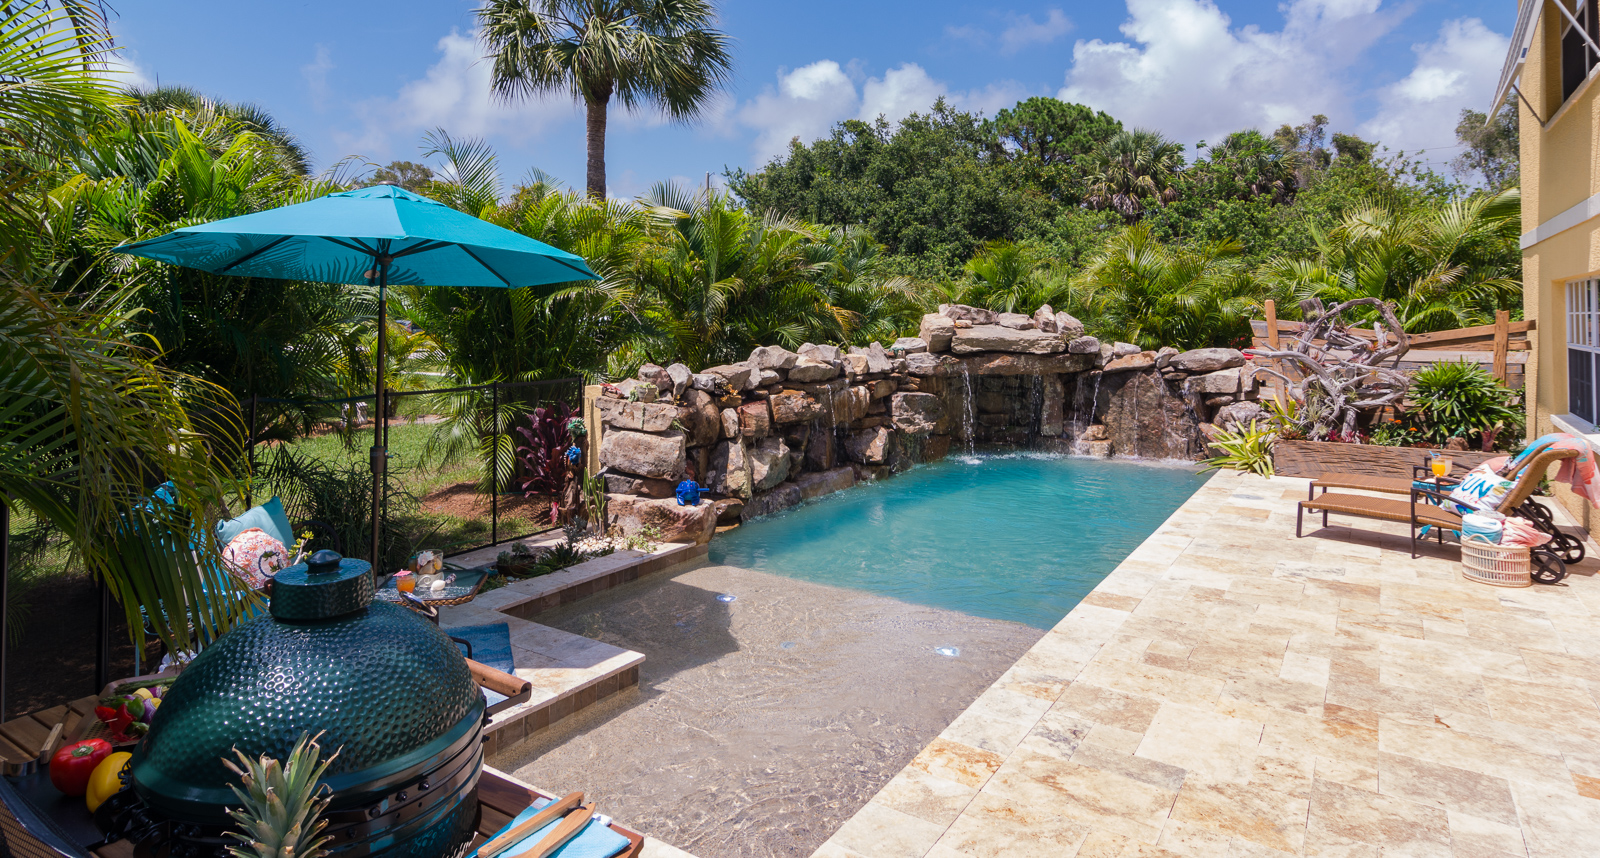 Insane pools tv episode small yard big dreams for Custom swimming pool designs